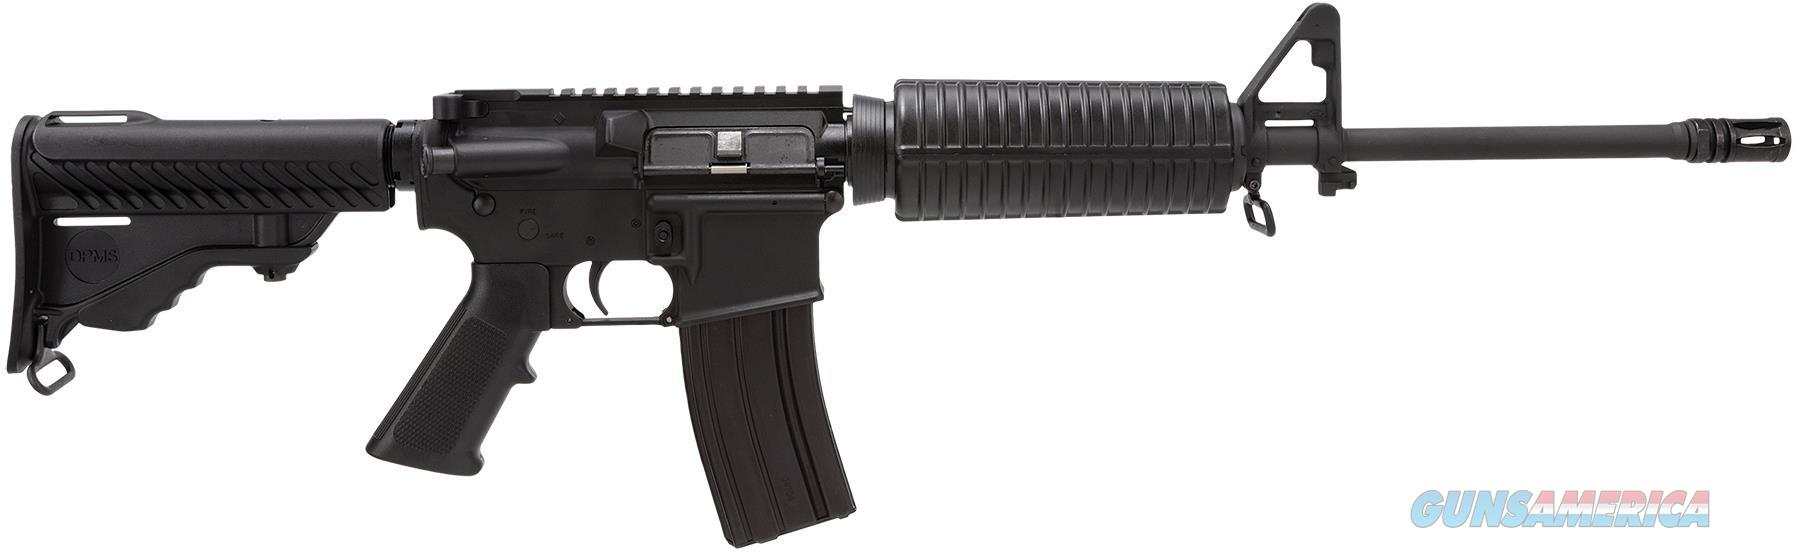 "DPMSPANTHER ARMS PNTHR A3 LT 223 16"" 60525  Guns > Rifles > DPMS - Panther Arms > Complete Rifle"